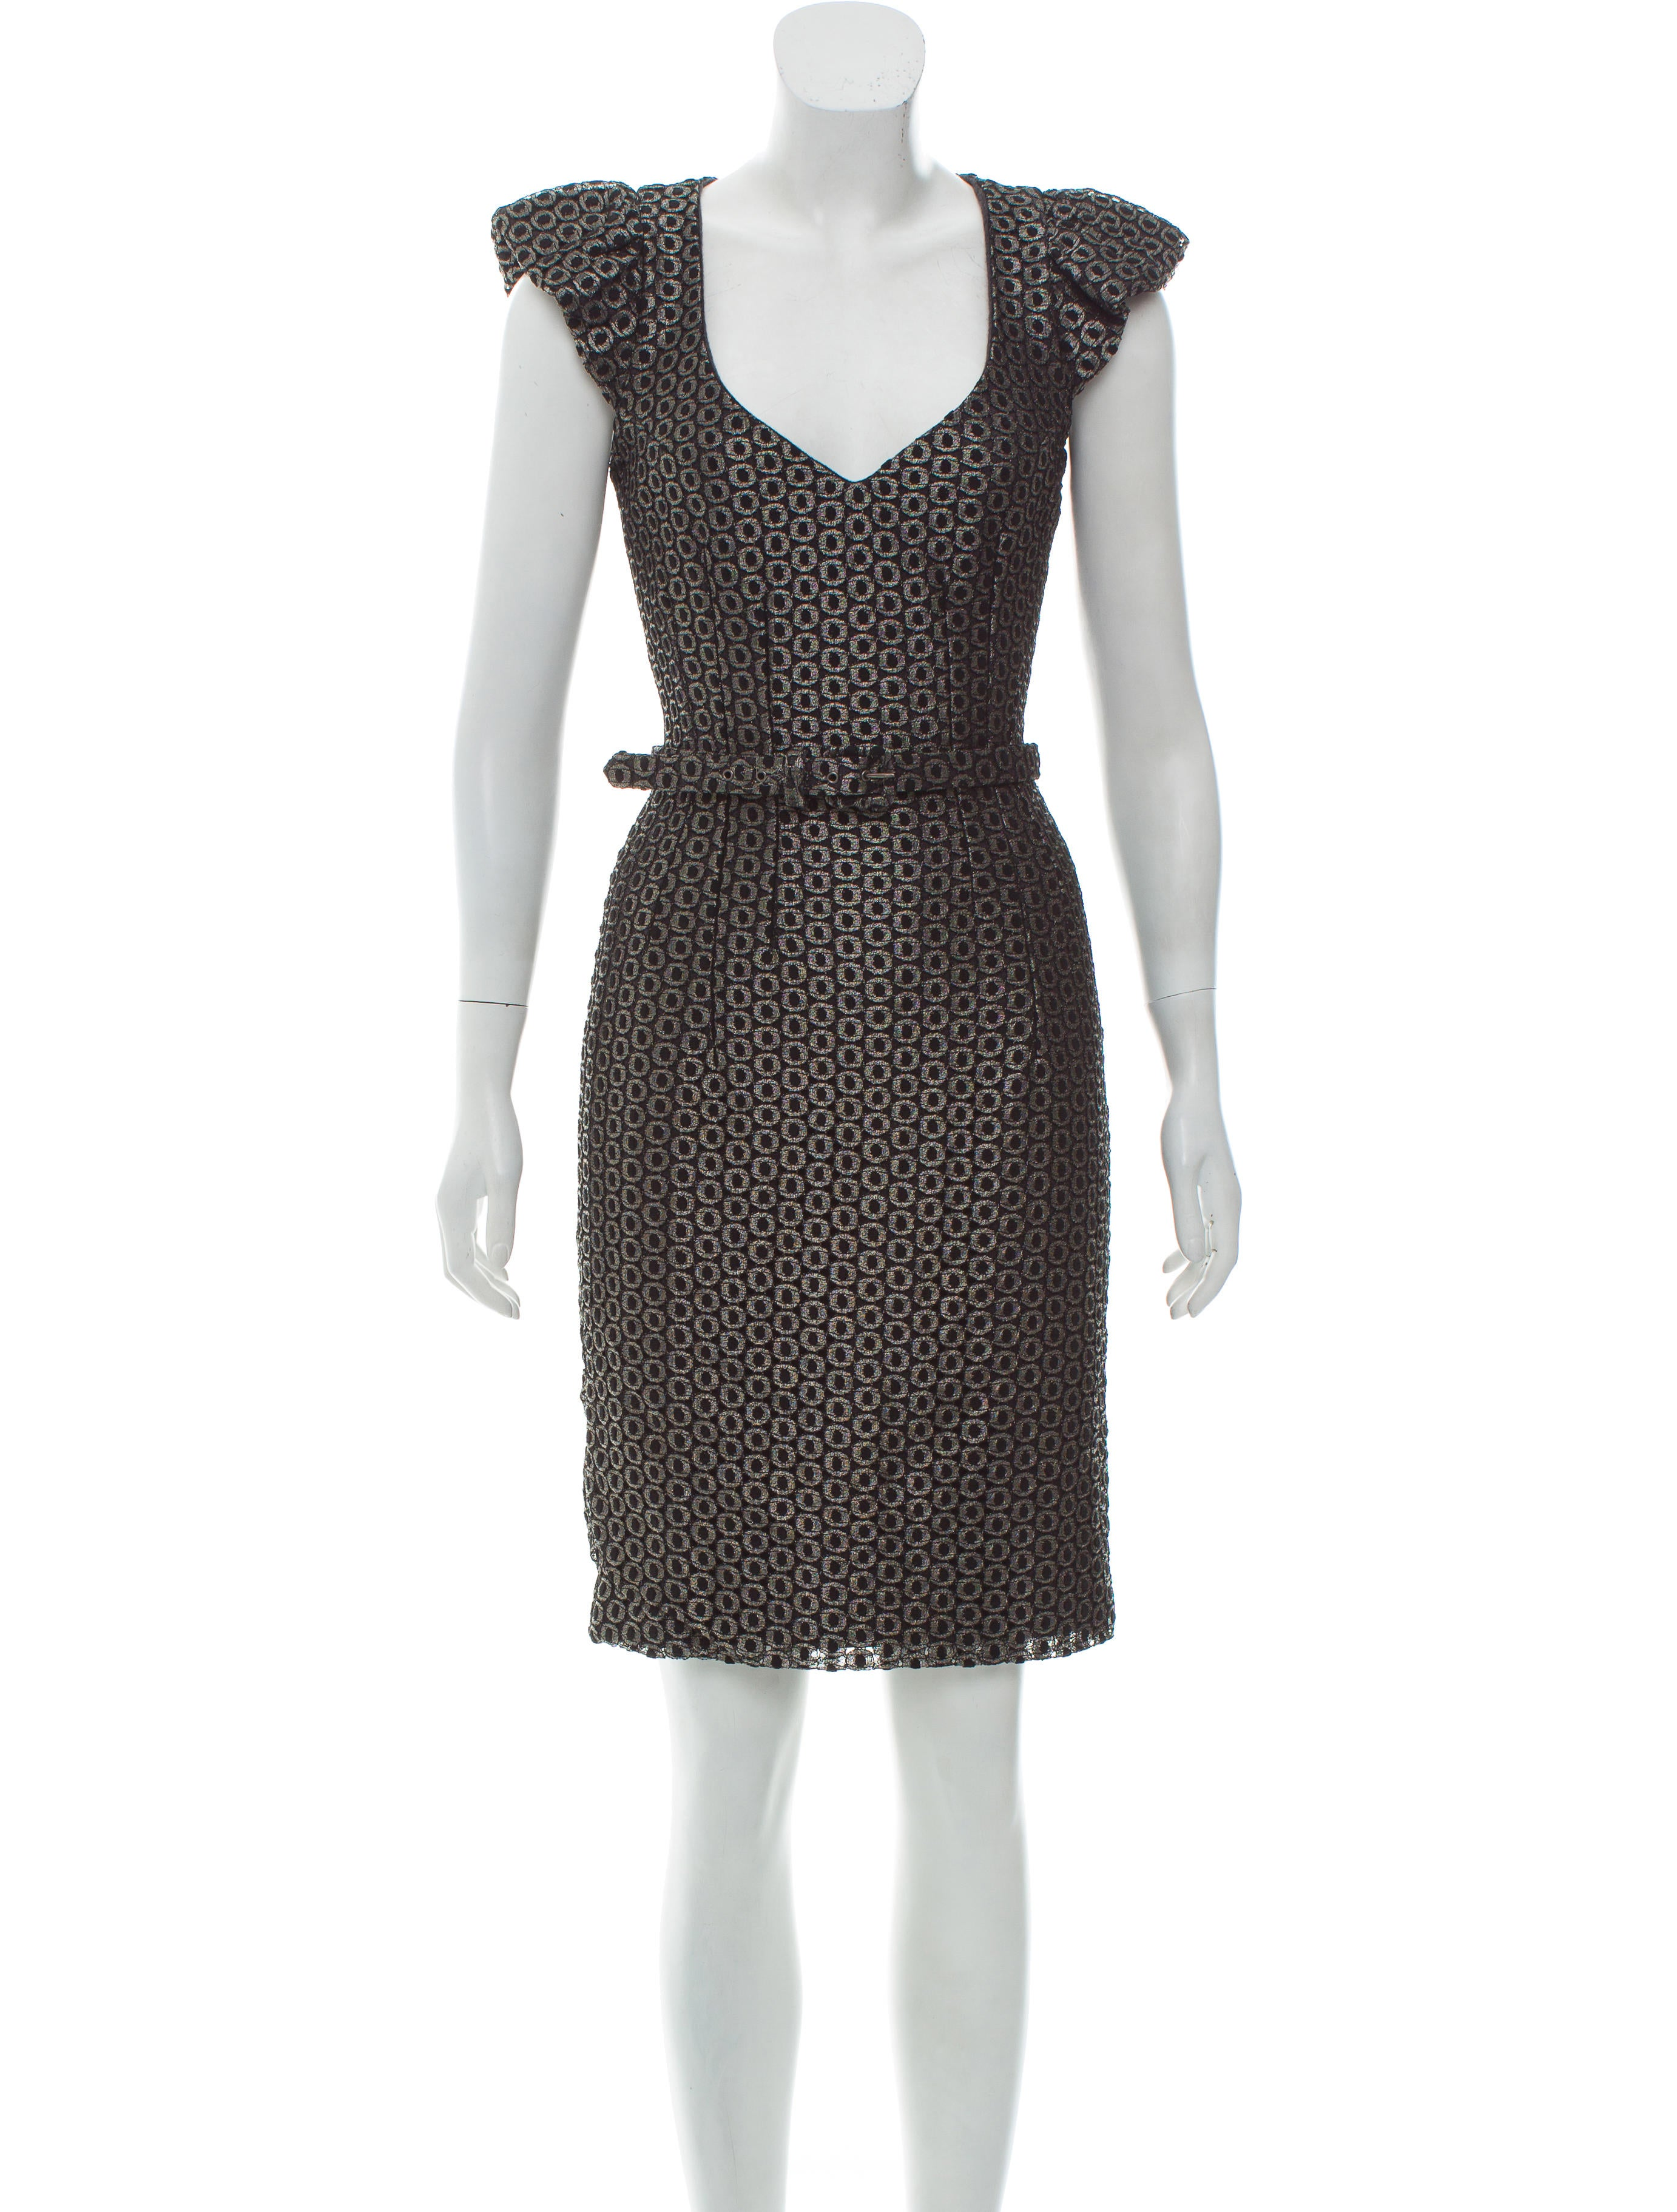 DRESSES - Knee-length dresses Andrew Gn Buy Cheap Latest Collections Cheap Sale Find Great Discount Authentic Shopping Discounts Online iGL2cn